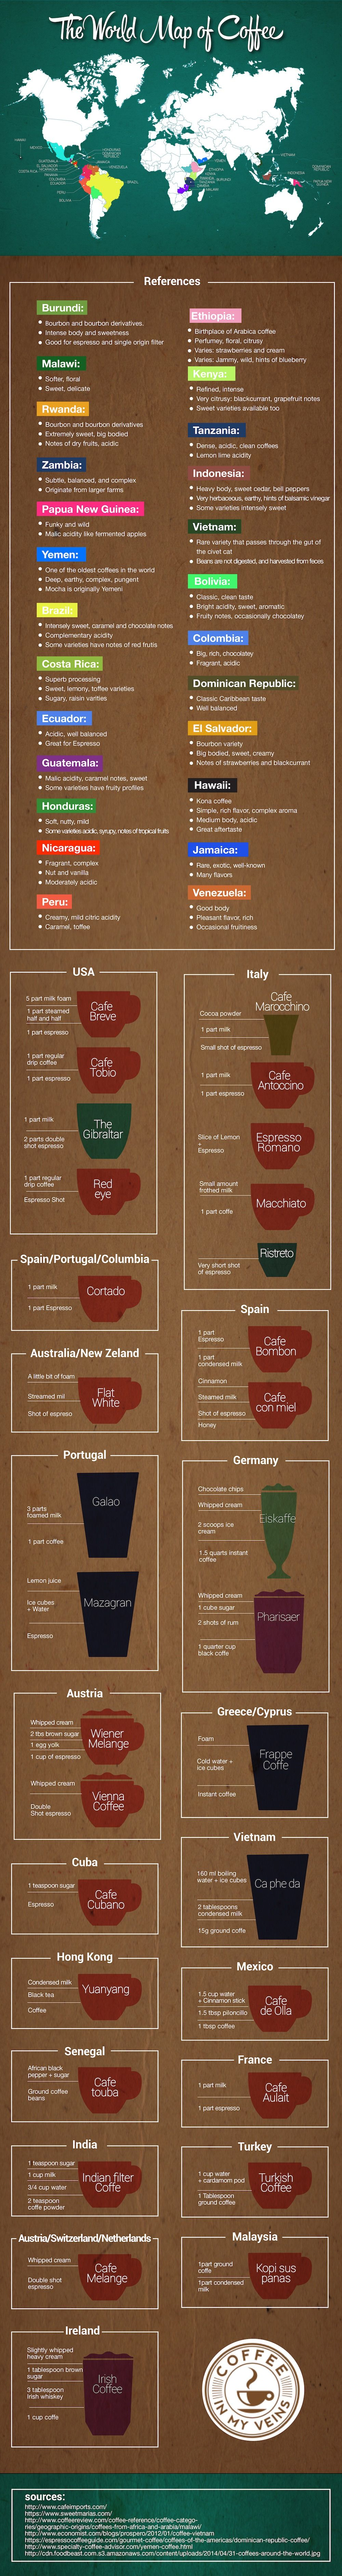 Coffee All Over The World is part of Coffee Shops Around The World You Have To See Buzzfeed - Working at Starbucks as a university student, I made all sorts of coffees, from lattes and cappuccinos to caramel macchiatos and Americanos  Before I